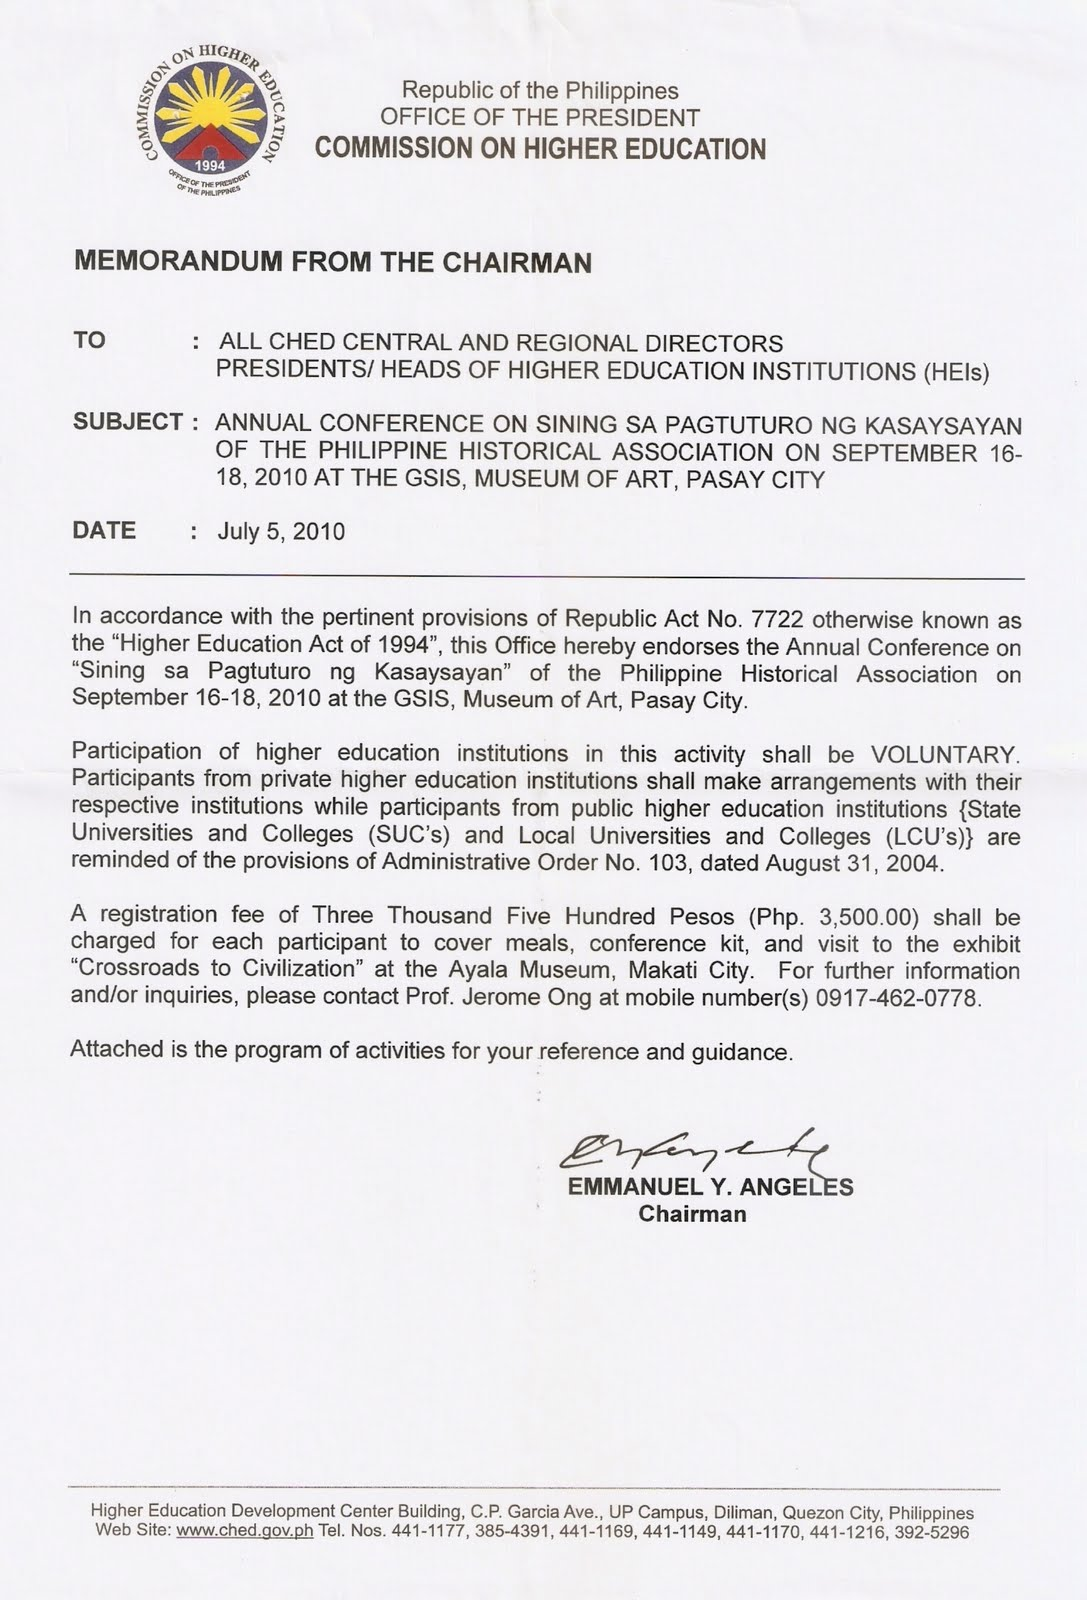 ched memo 30 series 2004 Ched memorandum order no 05 series of 2002   this set of policies and guidelines is hereby approved and shall take effect effective first semester 2003-2004, pang city, philippines _____ 2003 so ordered,  ched takes cognizance of the need to make quality education accessible to a greater number of qualified filipinos.